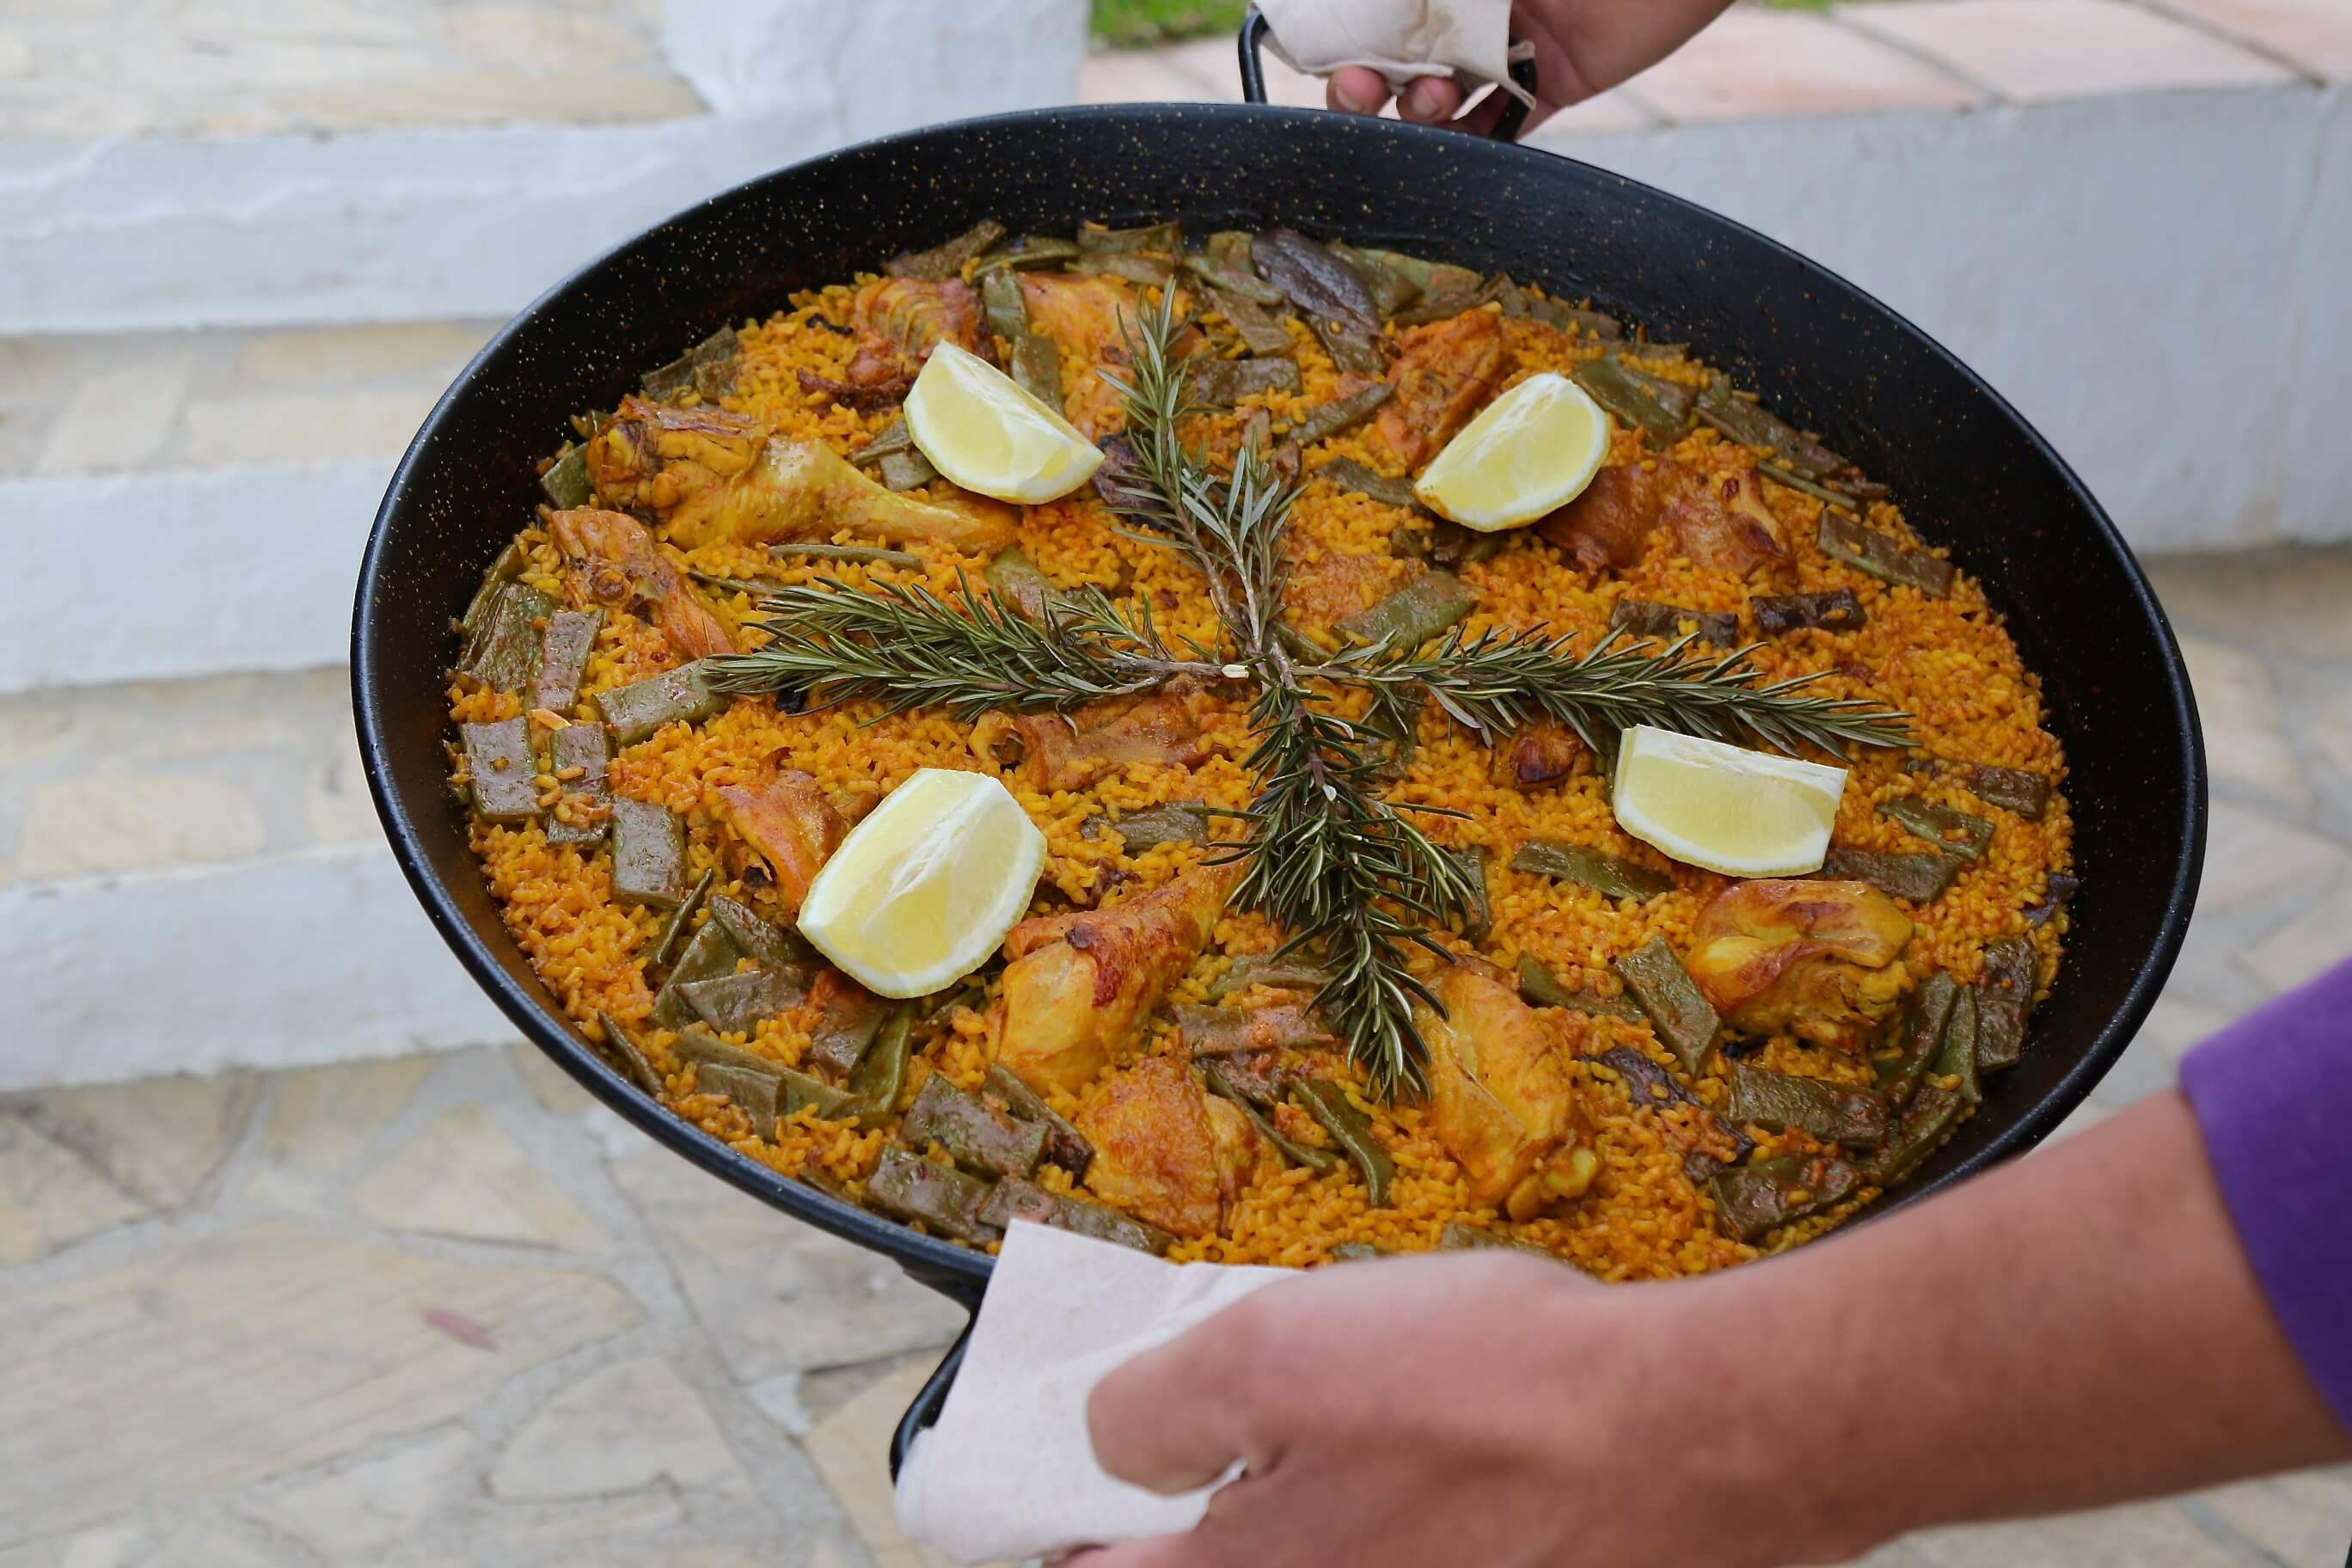 Chef David's Paella - Why Spain Should be Your Next Culinary Destination, Delectable Destinations, Carol Ketelson